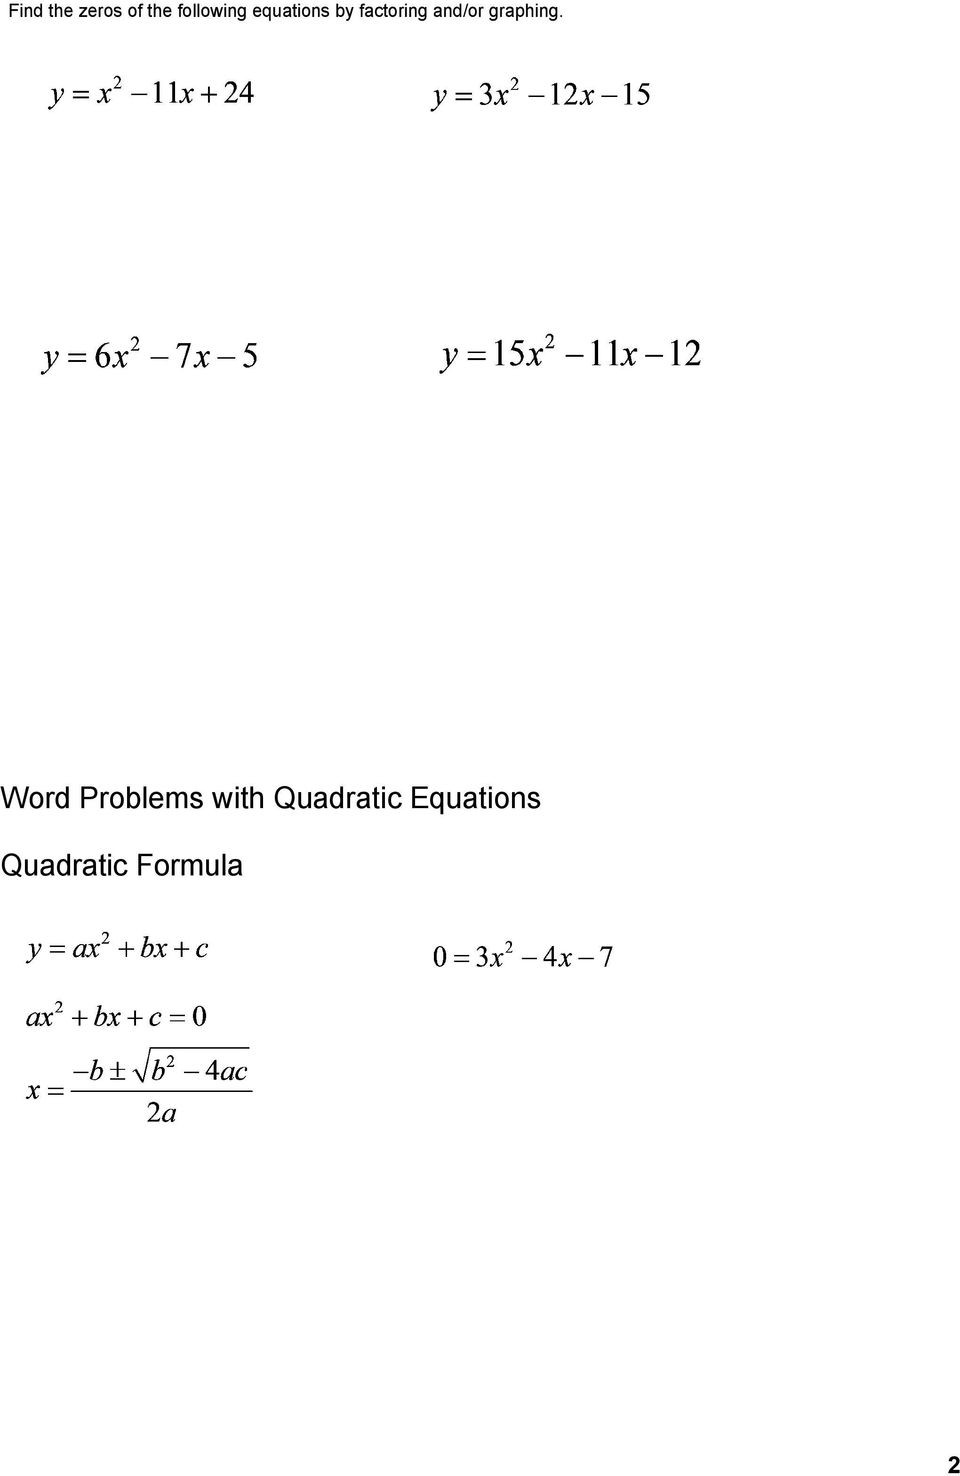 Quadratic Word Problems Worksheet Many Word Problems Result In Quadratic Equations that Need